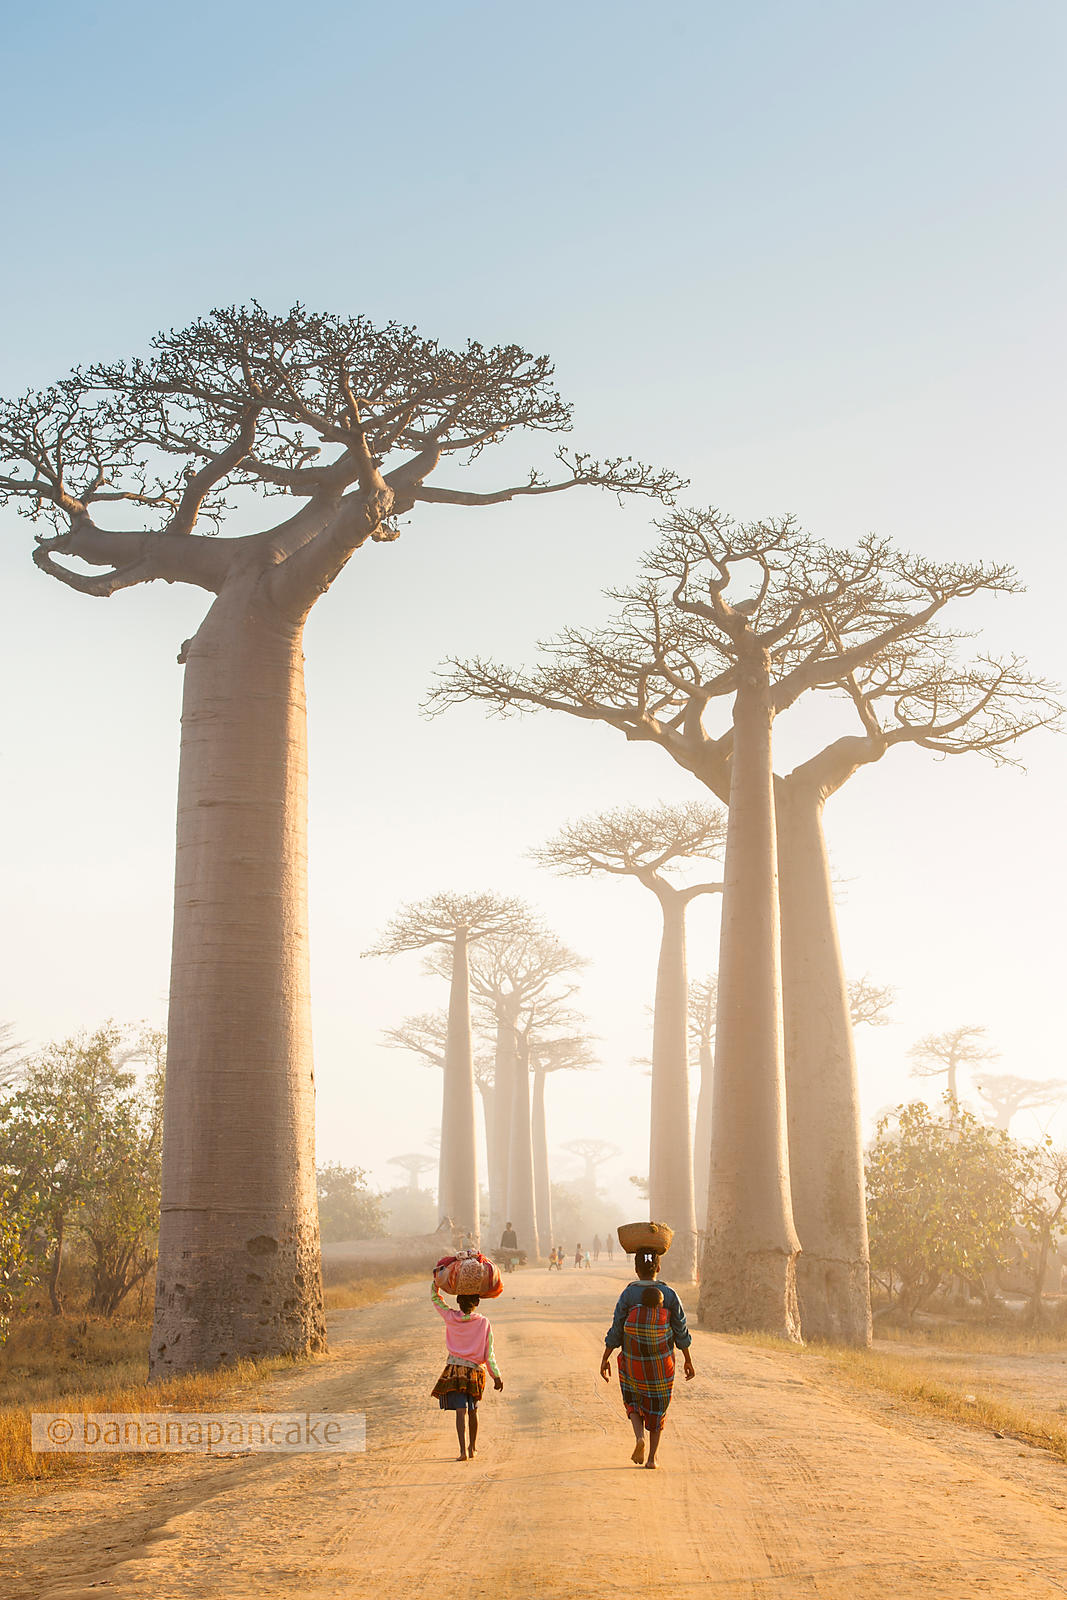 Women at dawn, Avenue of the Baobabs, Madagascar